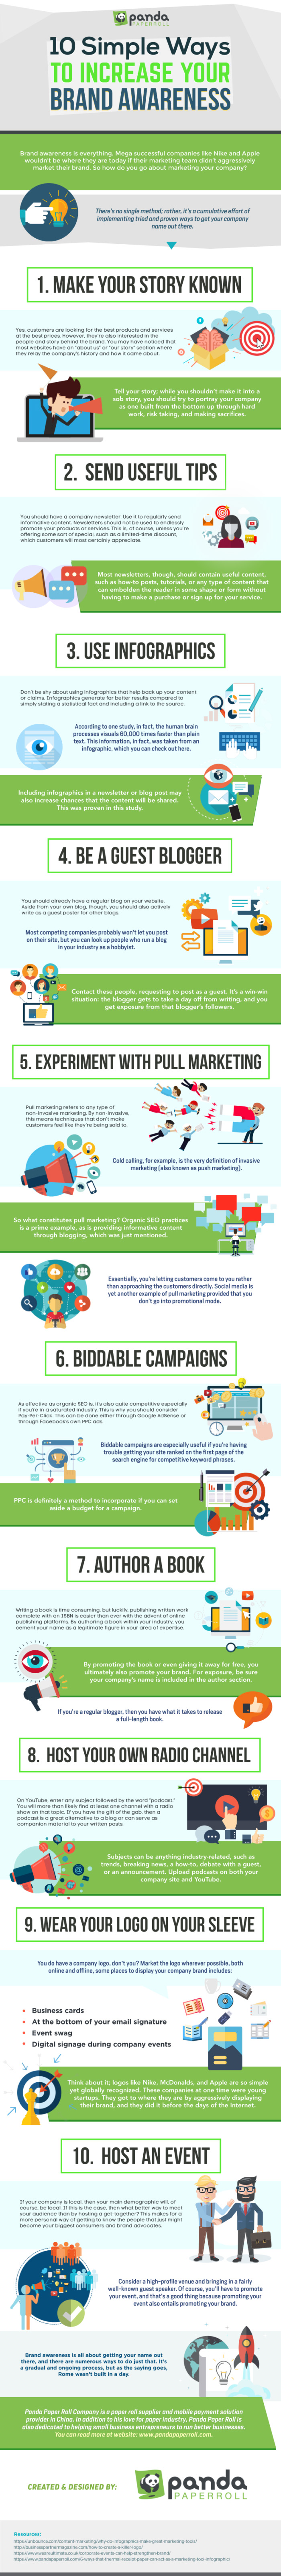 10 Simple Ways to Increase Your Brand Awareness [Infographic]